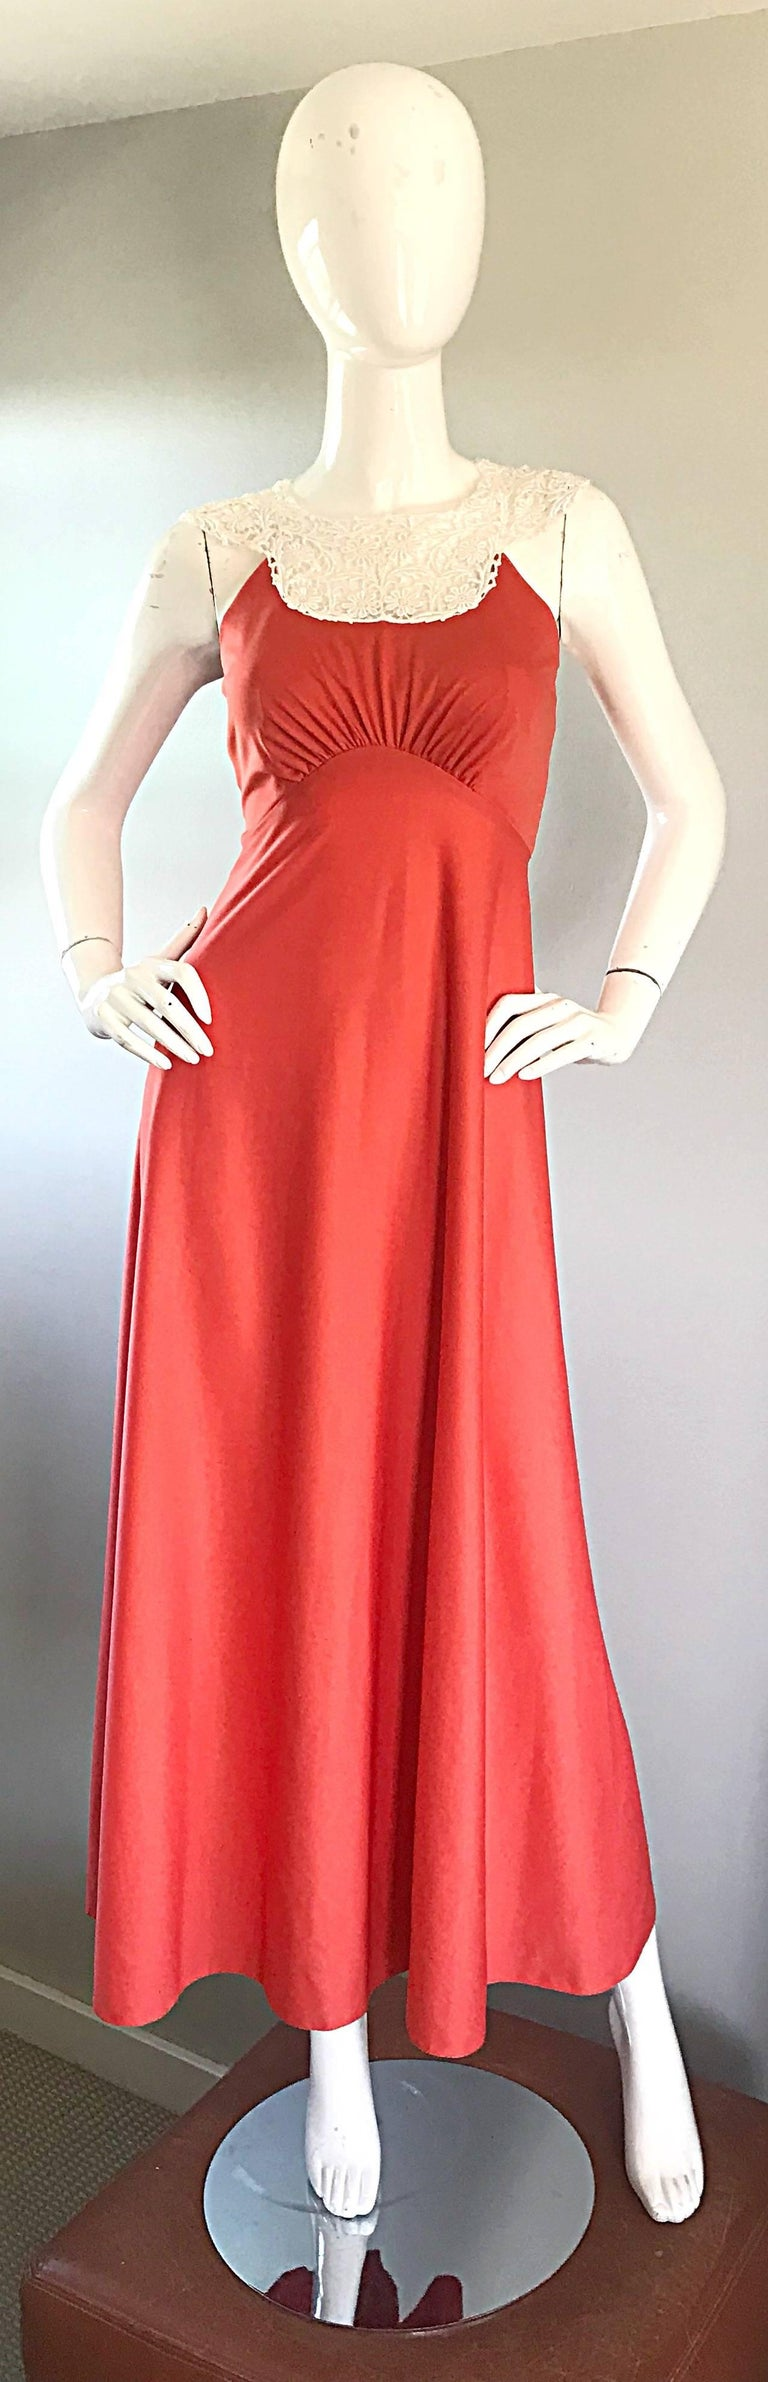 Striking coral / salmon pink jersey maxi dress! Hard to find color that compliments nearly any skin tone! Slinky jersey looks fantastic when on. White crochet lace collar makes for a stark contrast. Hidden zipper up the back with hook-and-eye